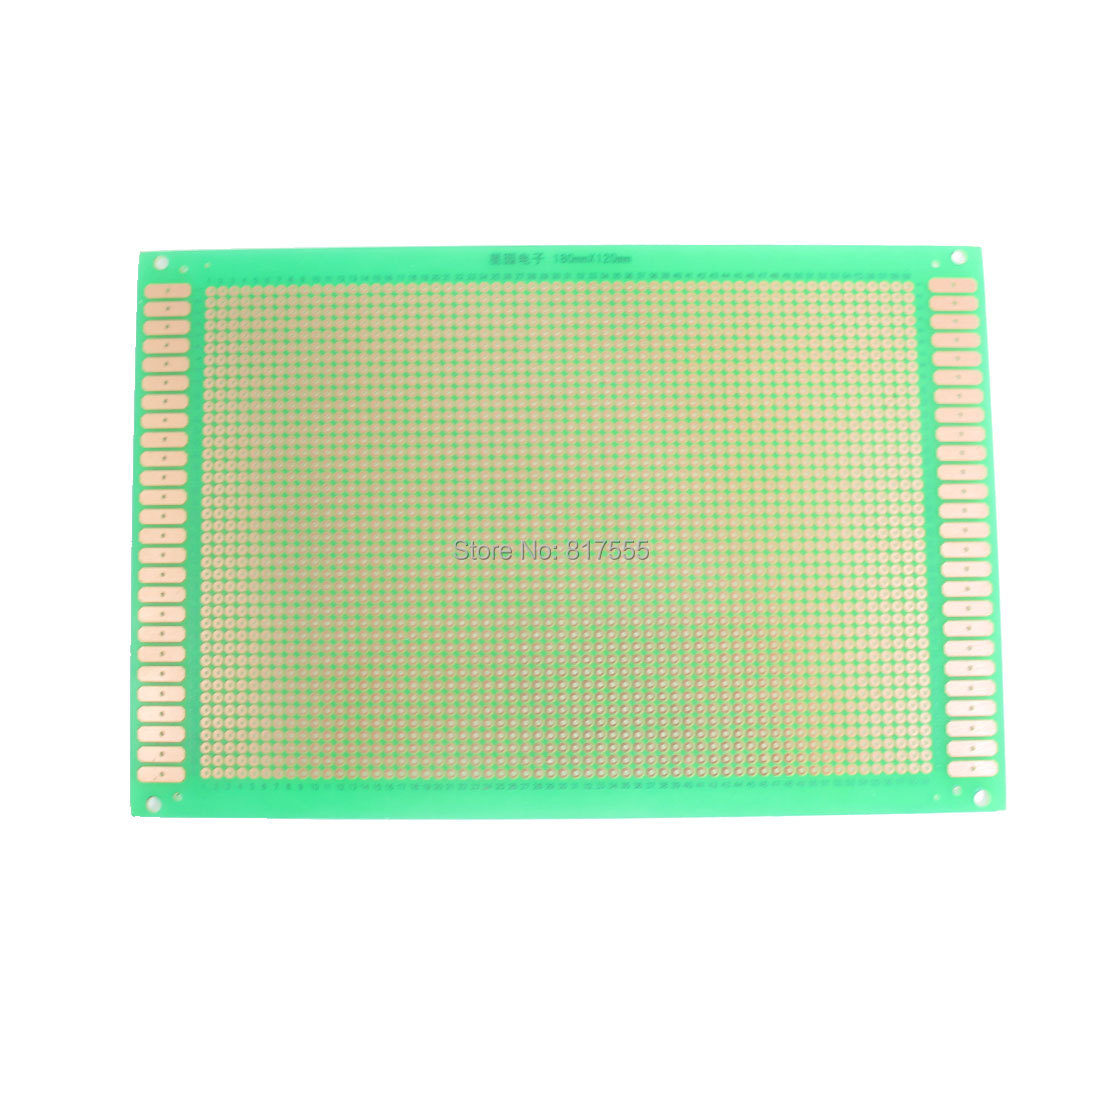 Cheap Pcb Fr4 Find Deals On Line At Alibabacom 10 Pcs 50mmx70mm Single Side Copper Cover Circuit Board Stripboard Get Quotations 71 X 47 Diy Prototyping Prototype